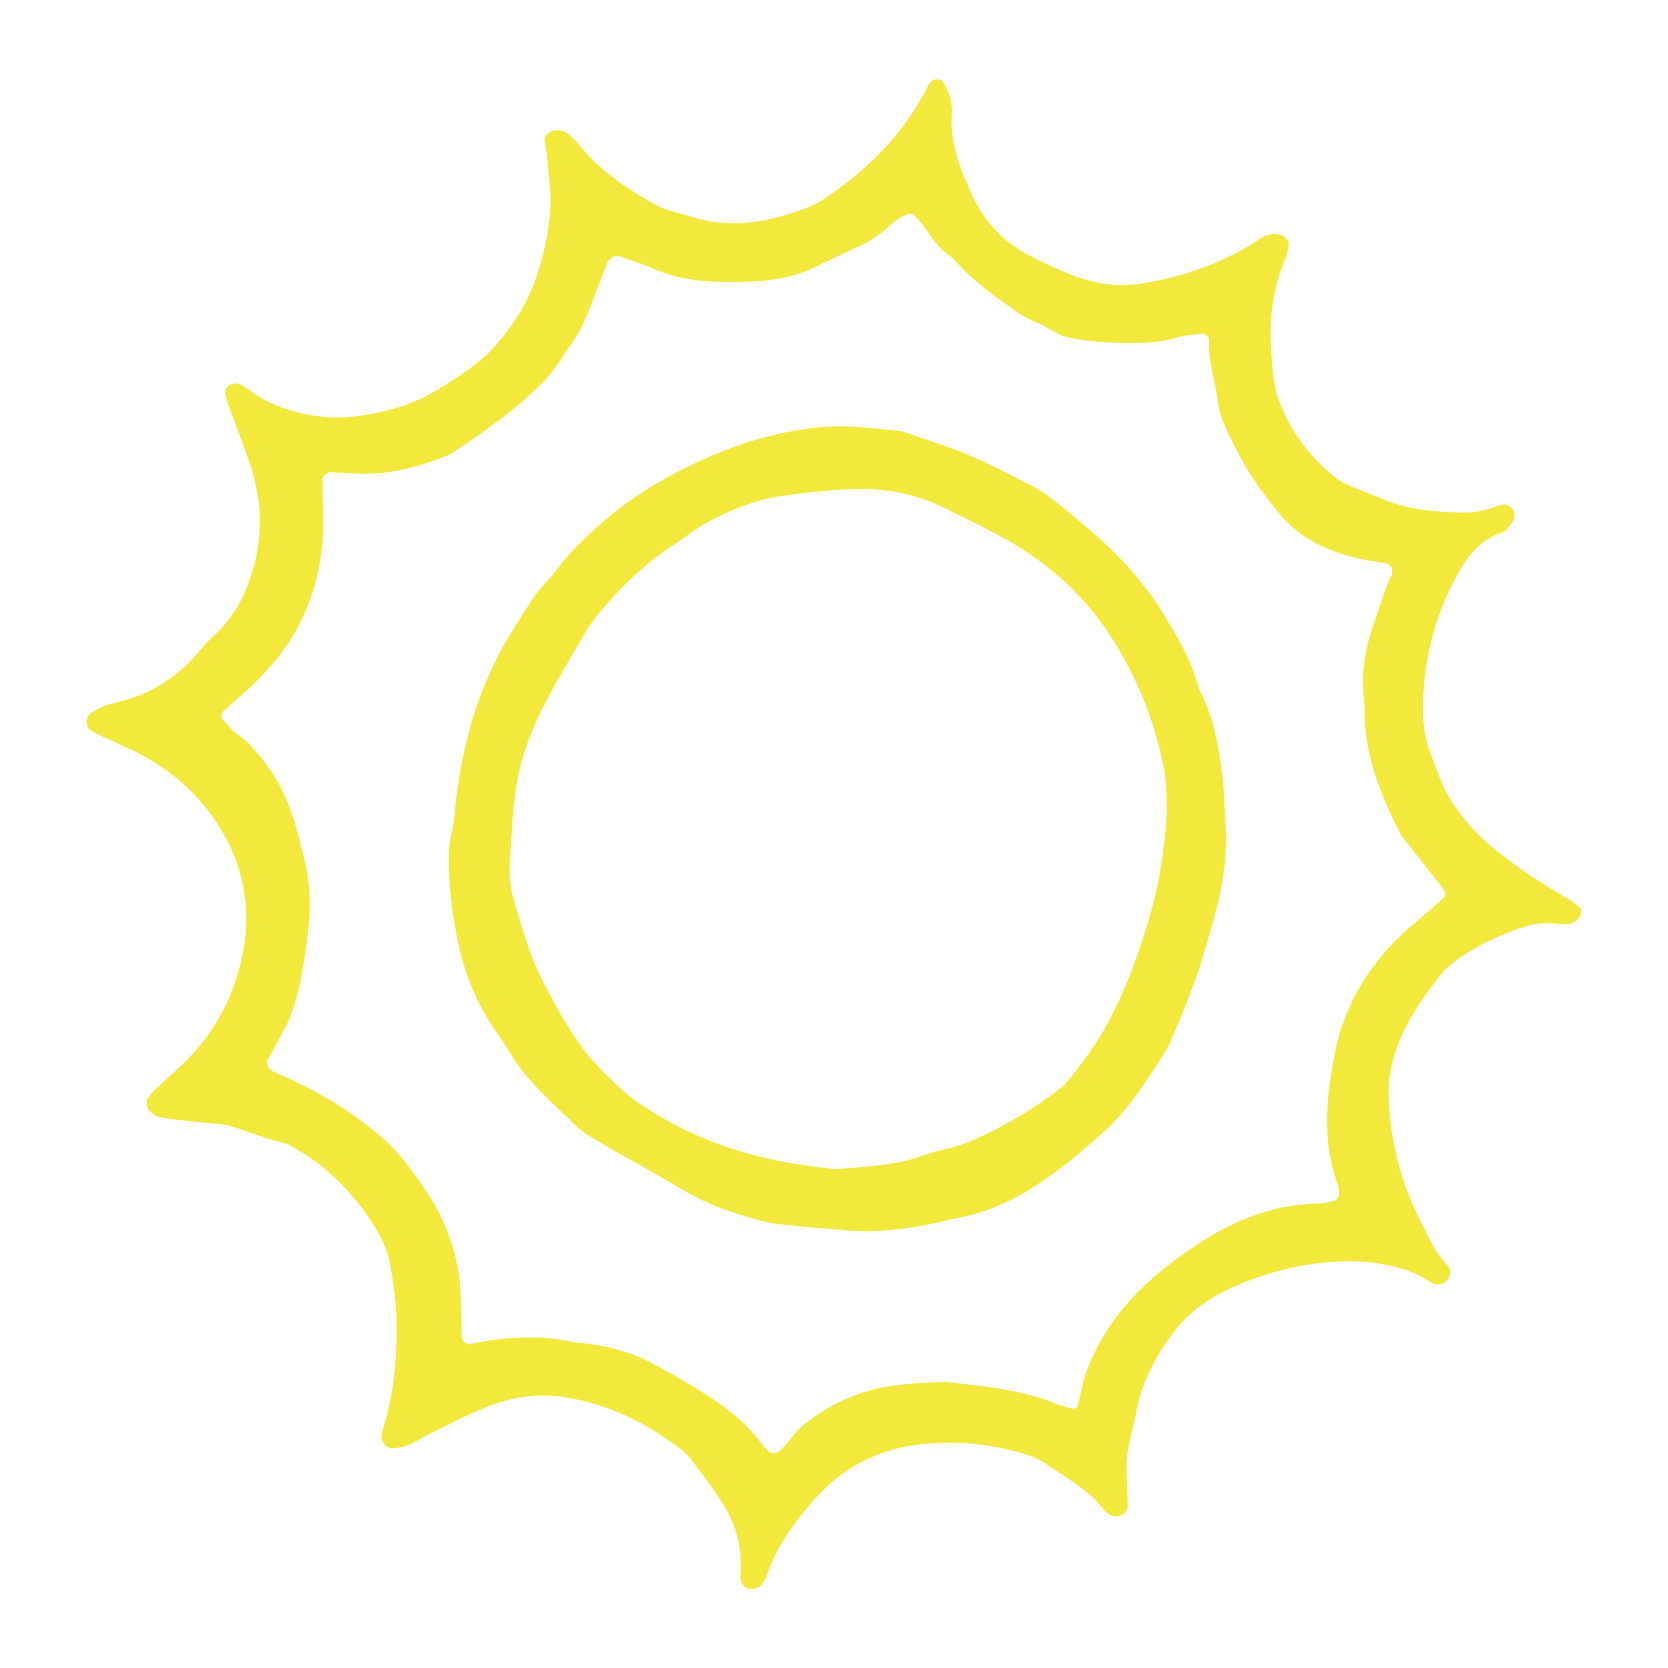 Graphics_Sun copy.png